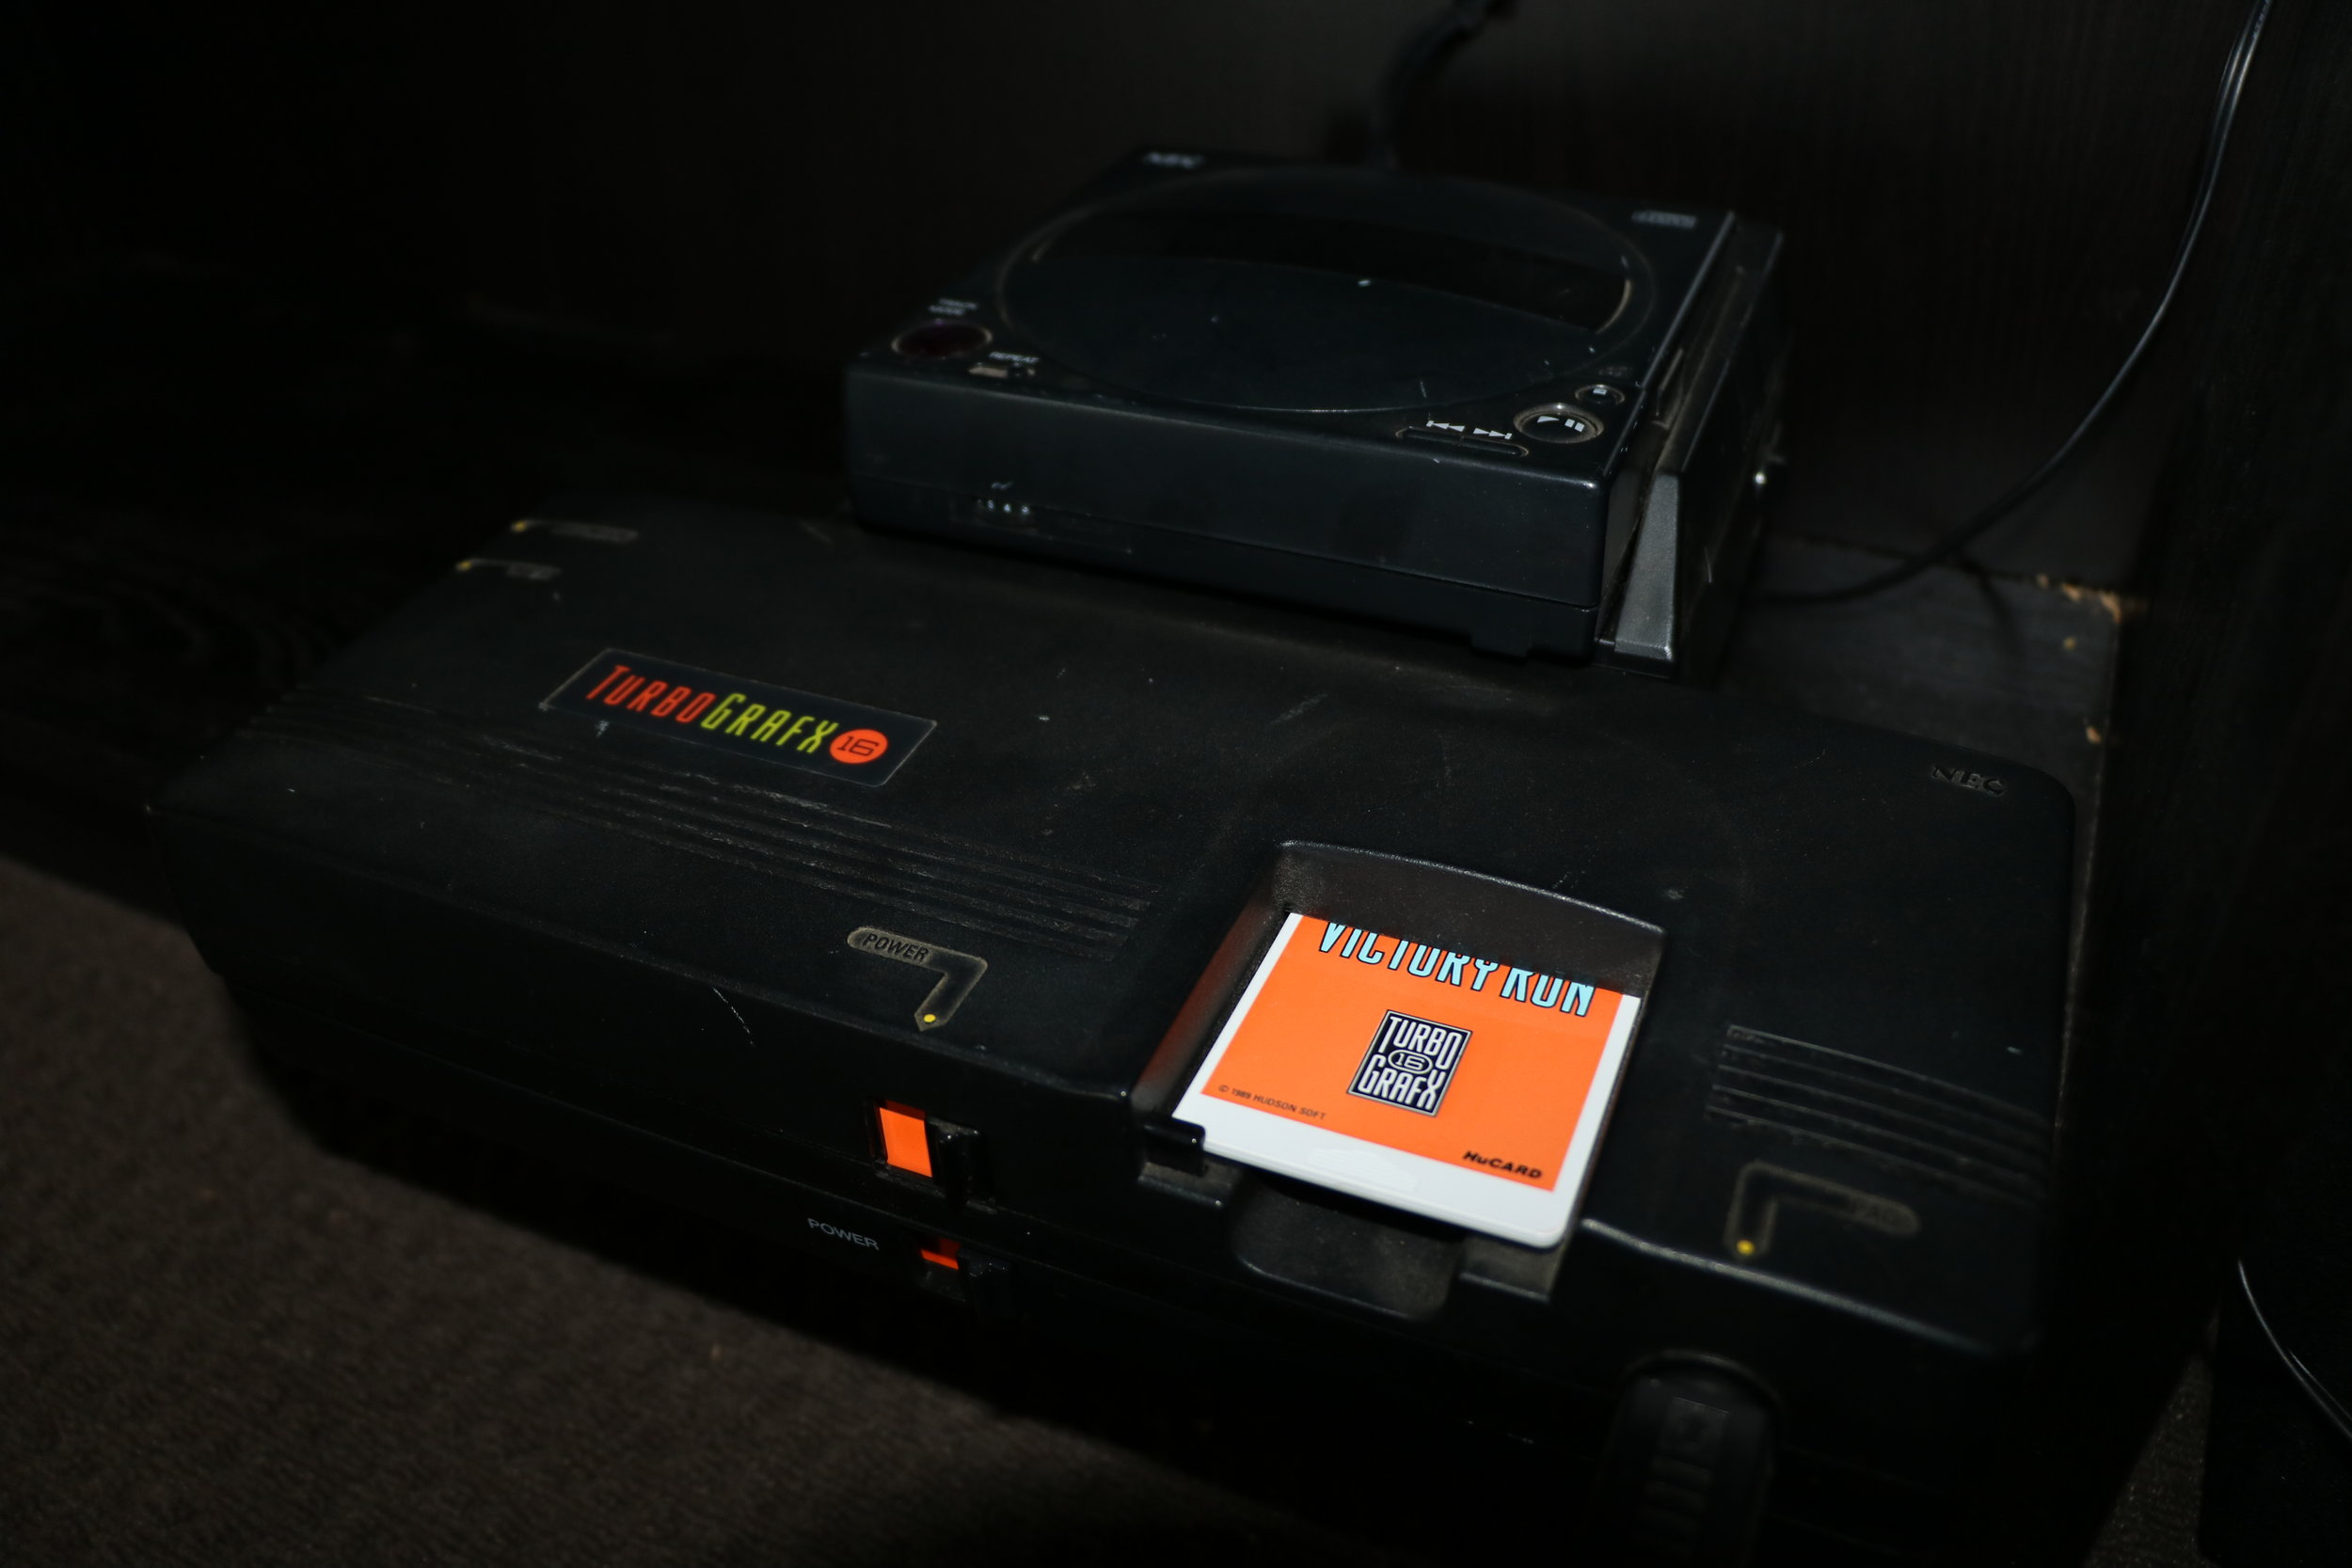 A Victory Run TurboChip inserted into a TurboGrafx 16. On top a TurboGrafx CD is attached.